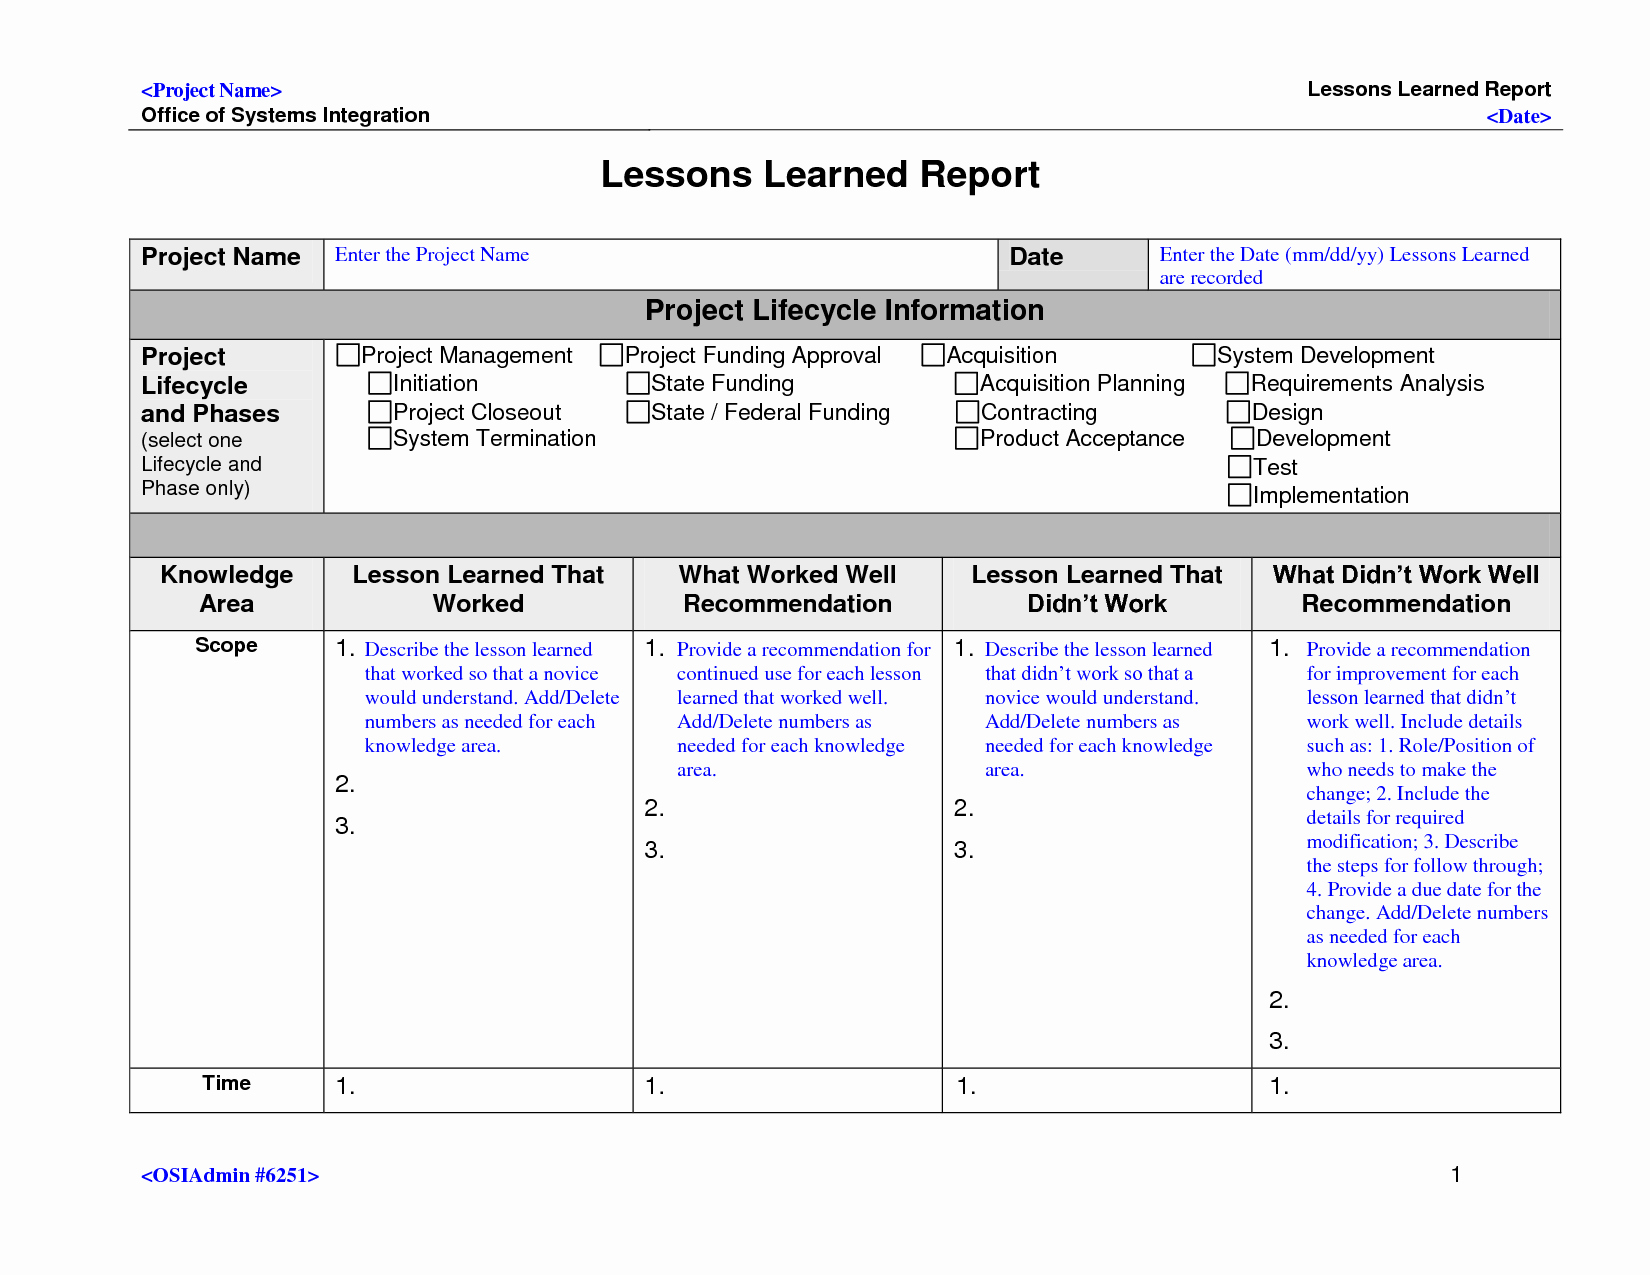 Lessons Learned Template Powerpoint Luxury Lessons Learned Template